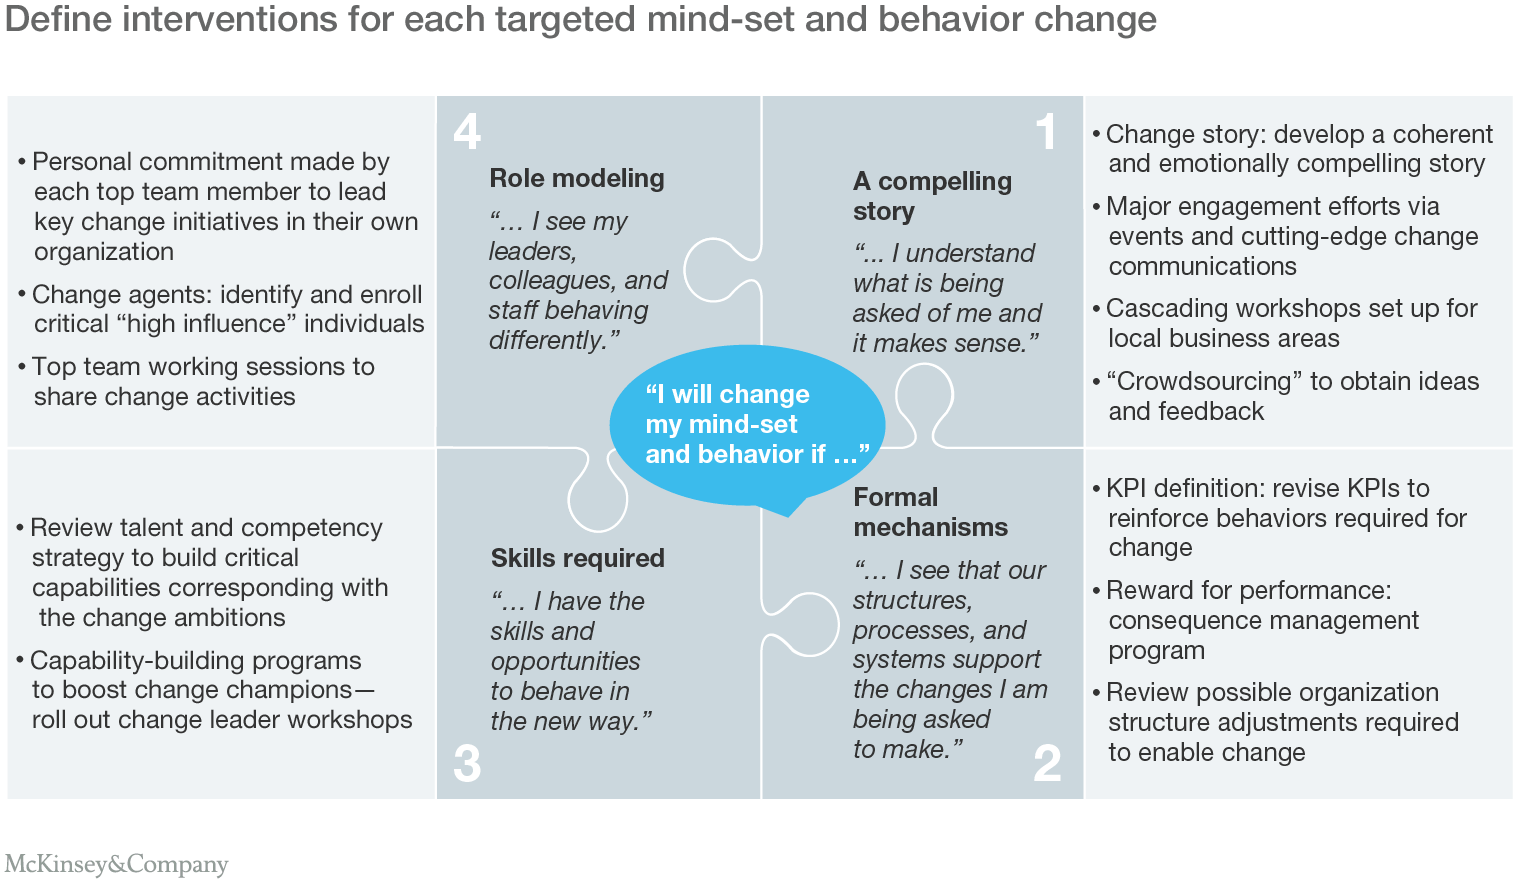 organizing to enable the shift from volume to value mckinsey define interventions for each targeted mindset and behavior change